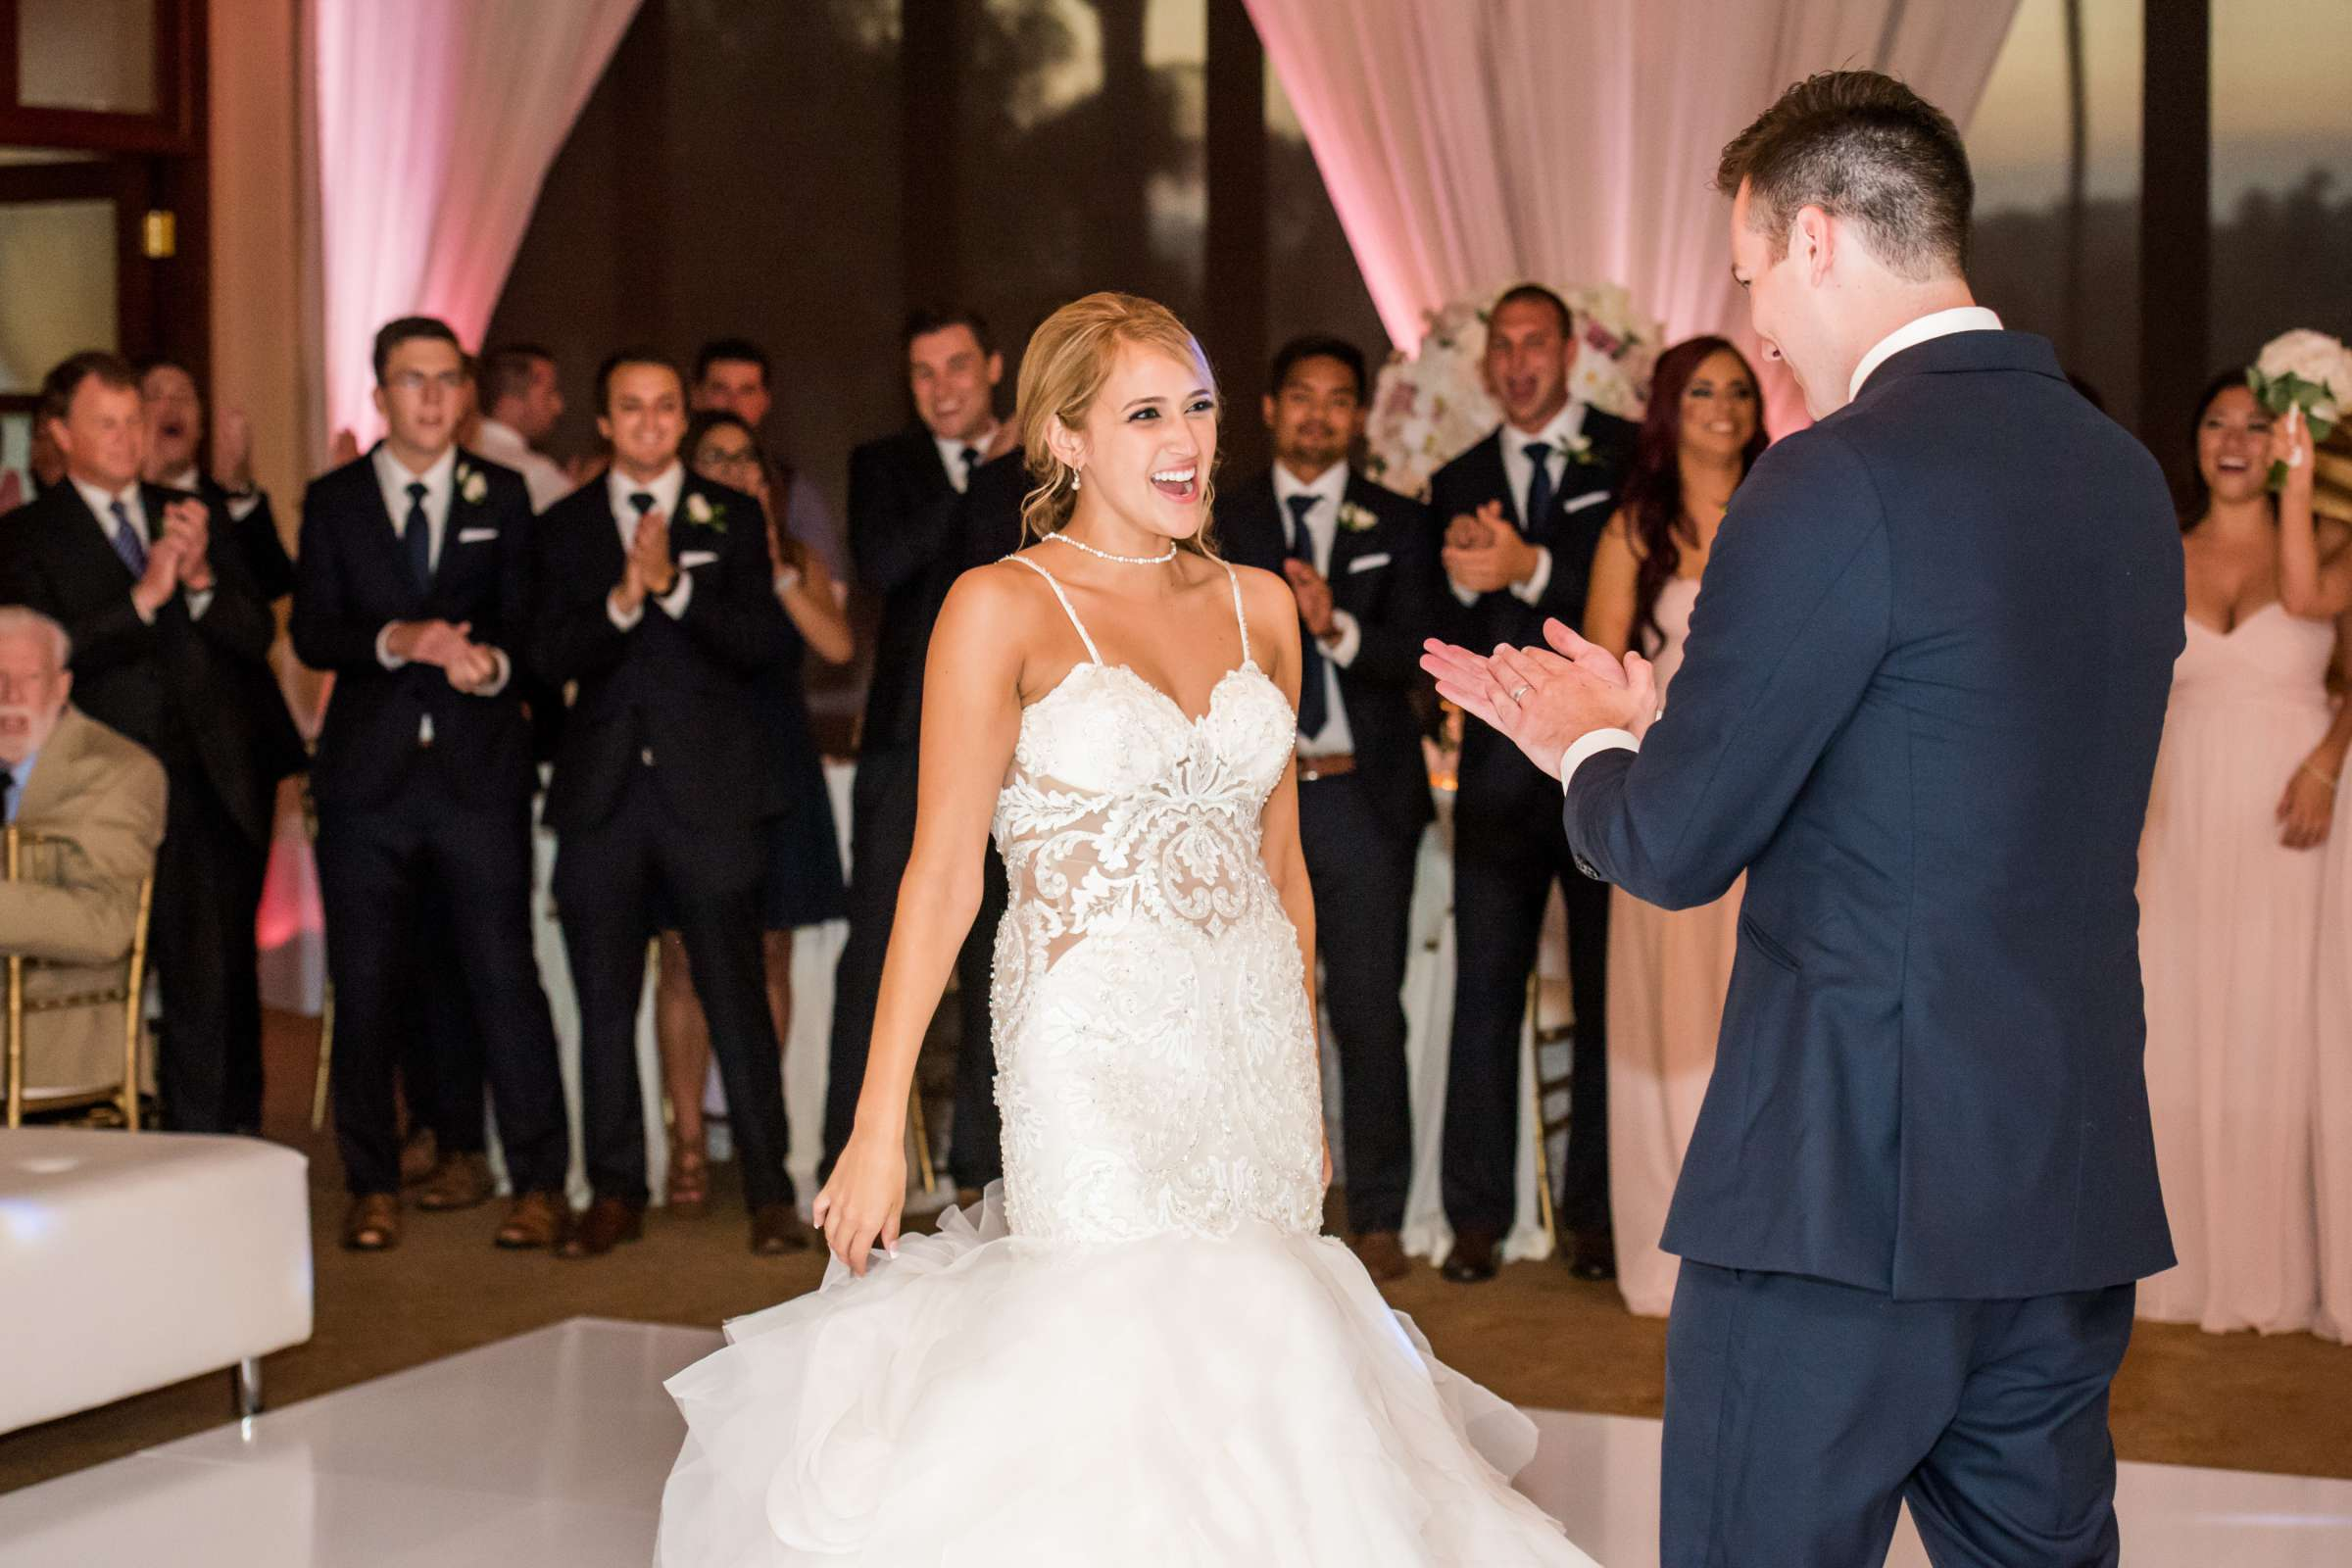 Fairbanks Ranch Country Club Wedding coordinated by Monarch Weddings, Gabriella and Kyle Wedding Photo #135 by True Photography